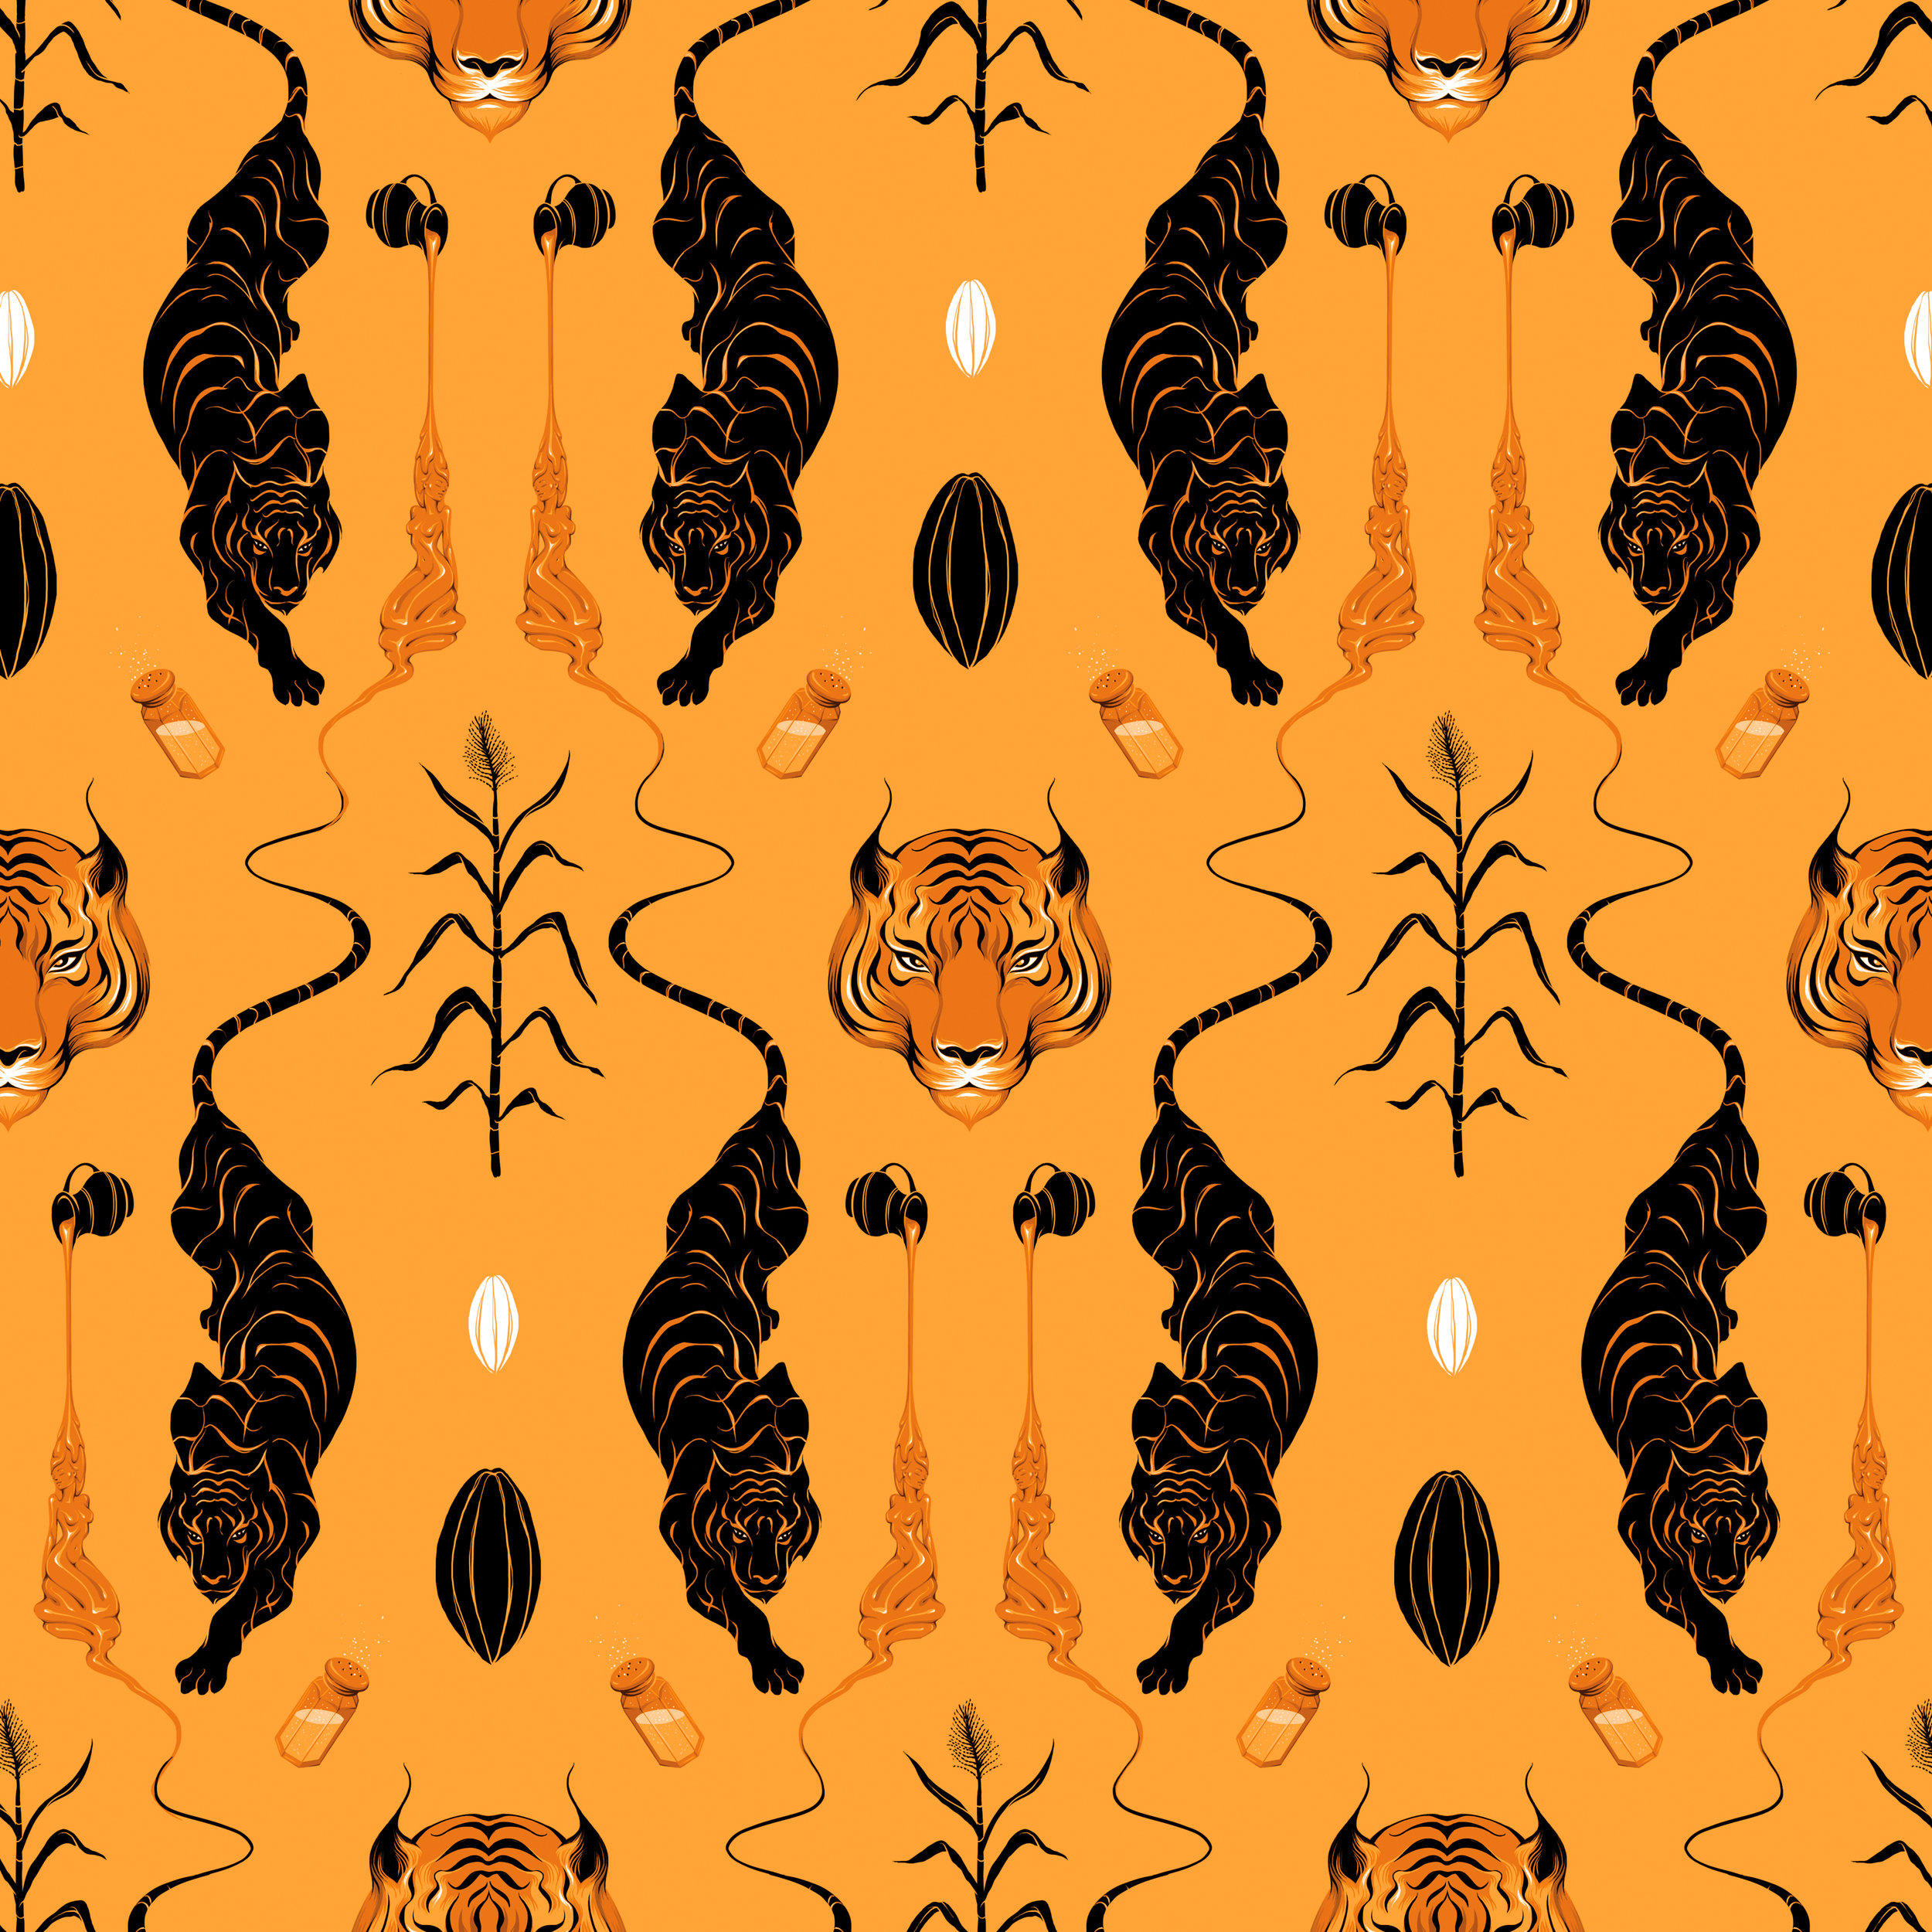 Gina Kiel - Gina was the first artist we commissioned for a WCF wrapper, and this bar is a true original. Still our most popular flavour, this salted caramel brittle artwork was inspired by the alluring; featuring our now iconic tiger, liquid caramel, sugar cane and of course, the cacao pod.